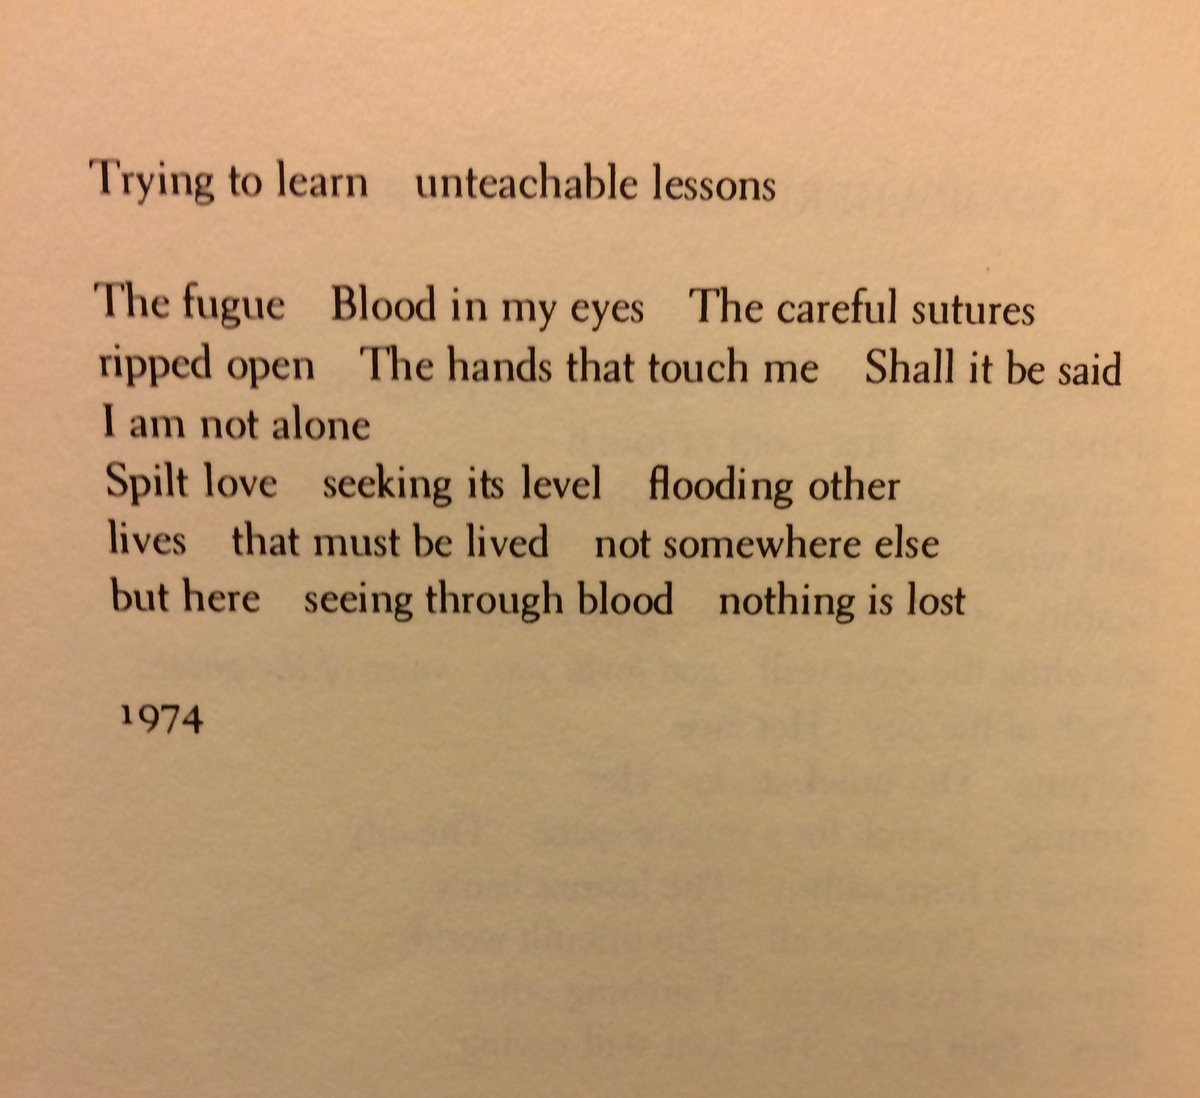 """Photograph from a 1974 poem by Adrienne Rich. The text reads: """"Trying to learn unteachable lessons. The fugue. Blood in my eyes. The careful sutures. Ripped open. The hands that touch me. Shall it be said. I am not alone. Spilt love. Seeking its level. Flooding other. Lives. That must be lived. Not somewhere else. But here. Seeing through blood. Nothing is lost."""